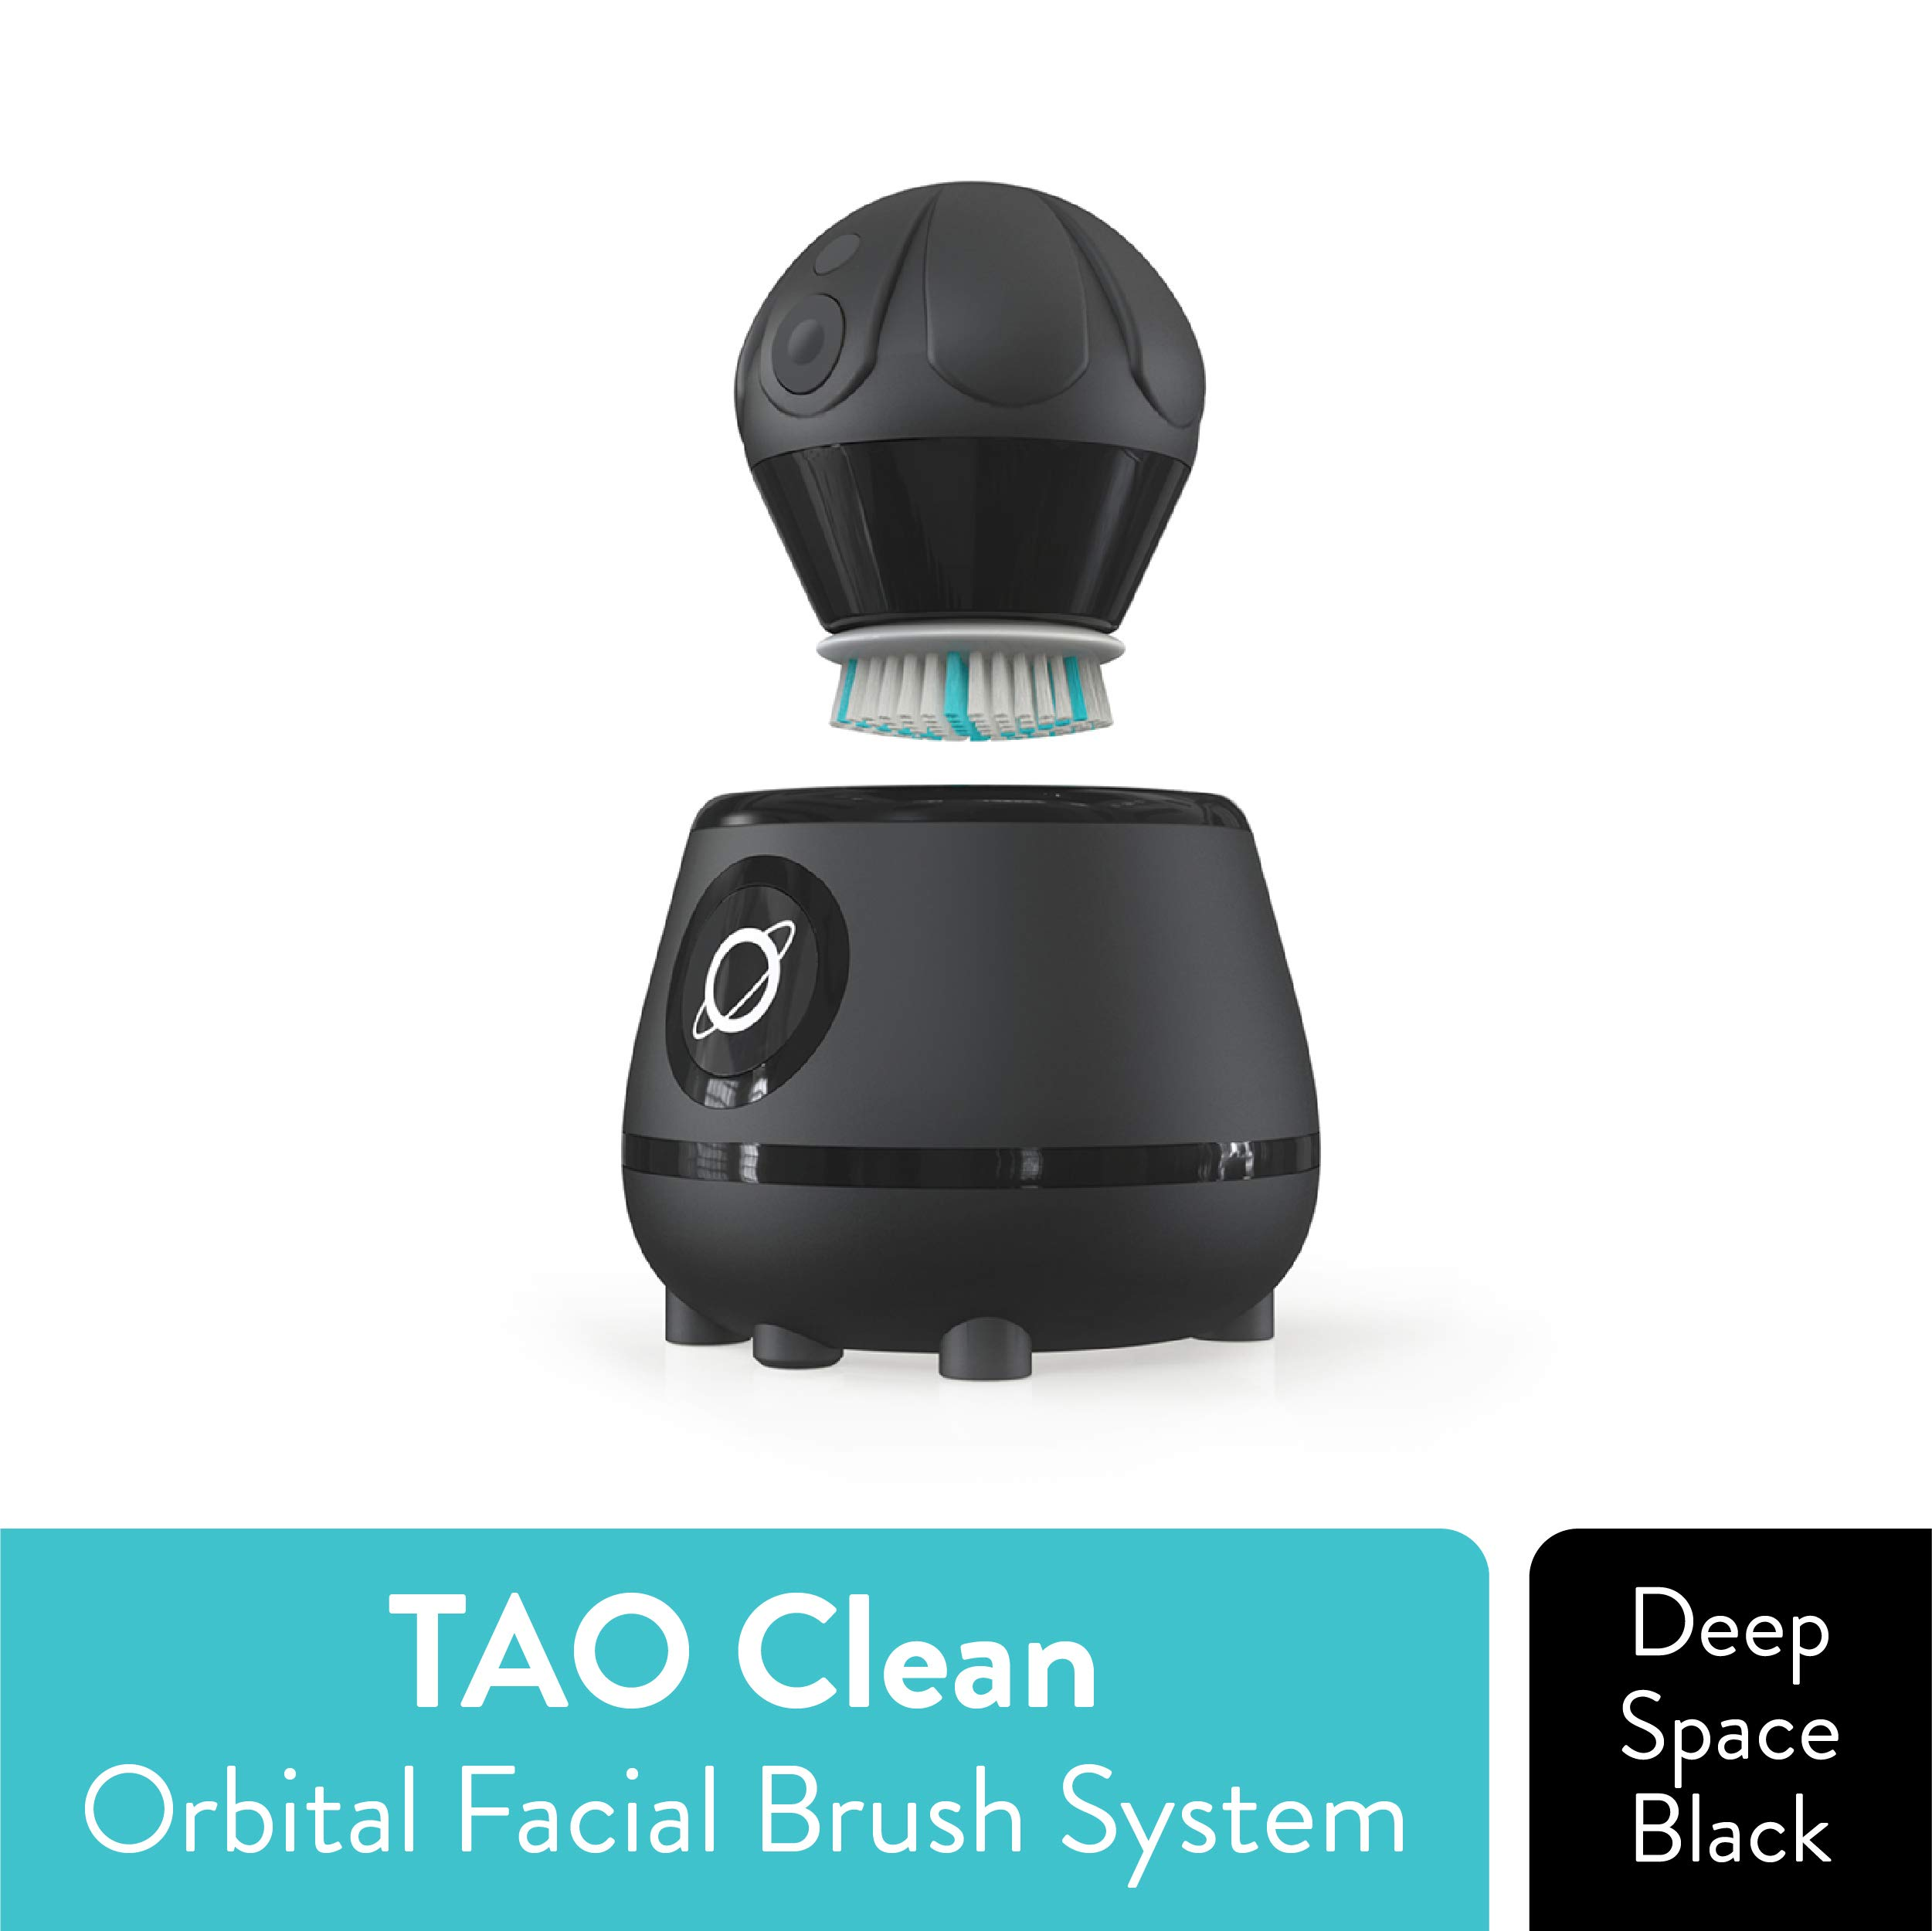 TAO Clean Orbital Facial Brush and Cleansing Station - Deep Space Black - Electric Face Cleansing Brush with Patented Docking Technology, Ergonomic Handle, Dual Speed Settings by Tao Clean